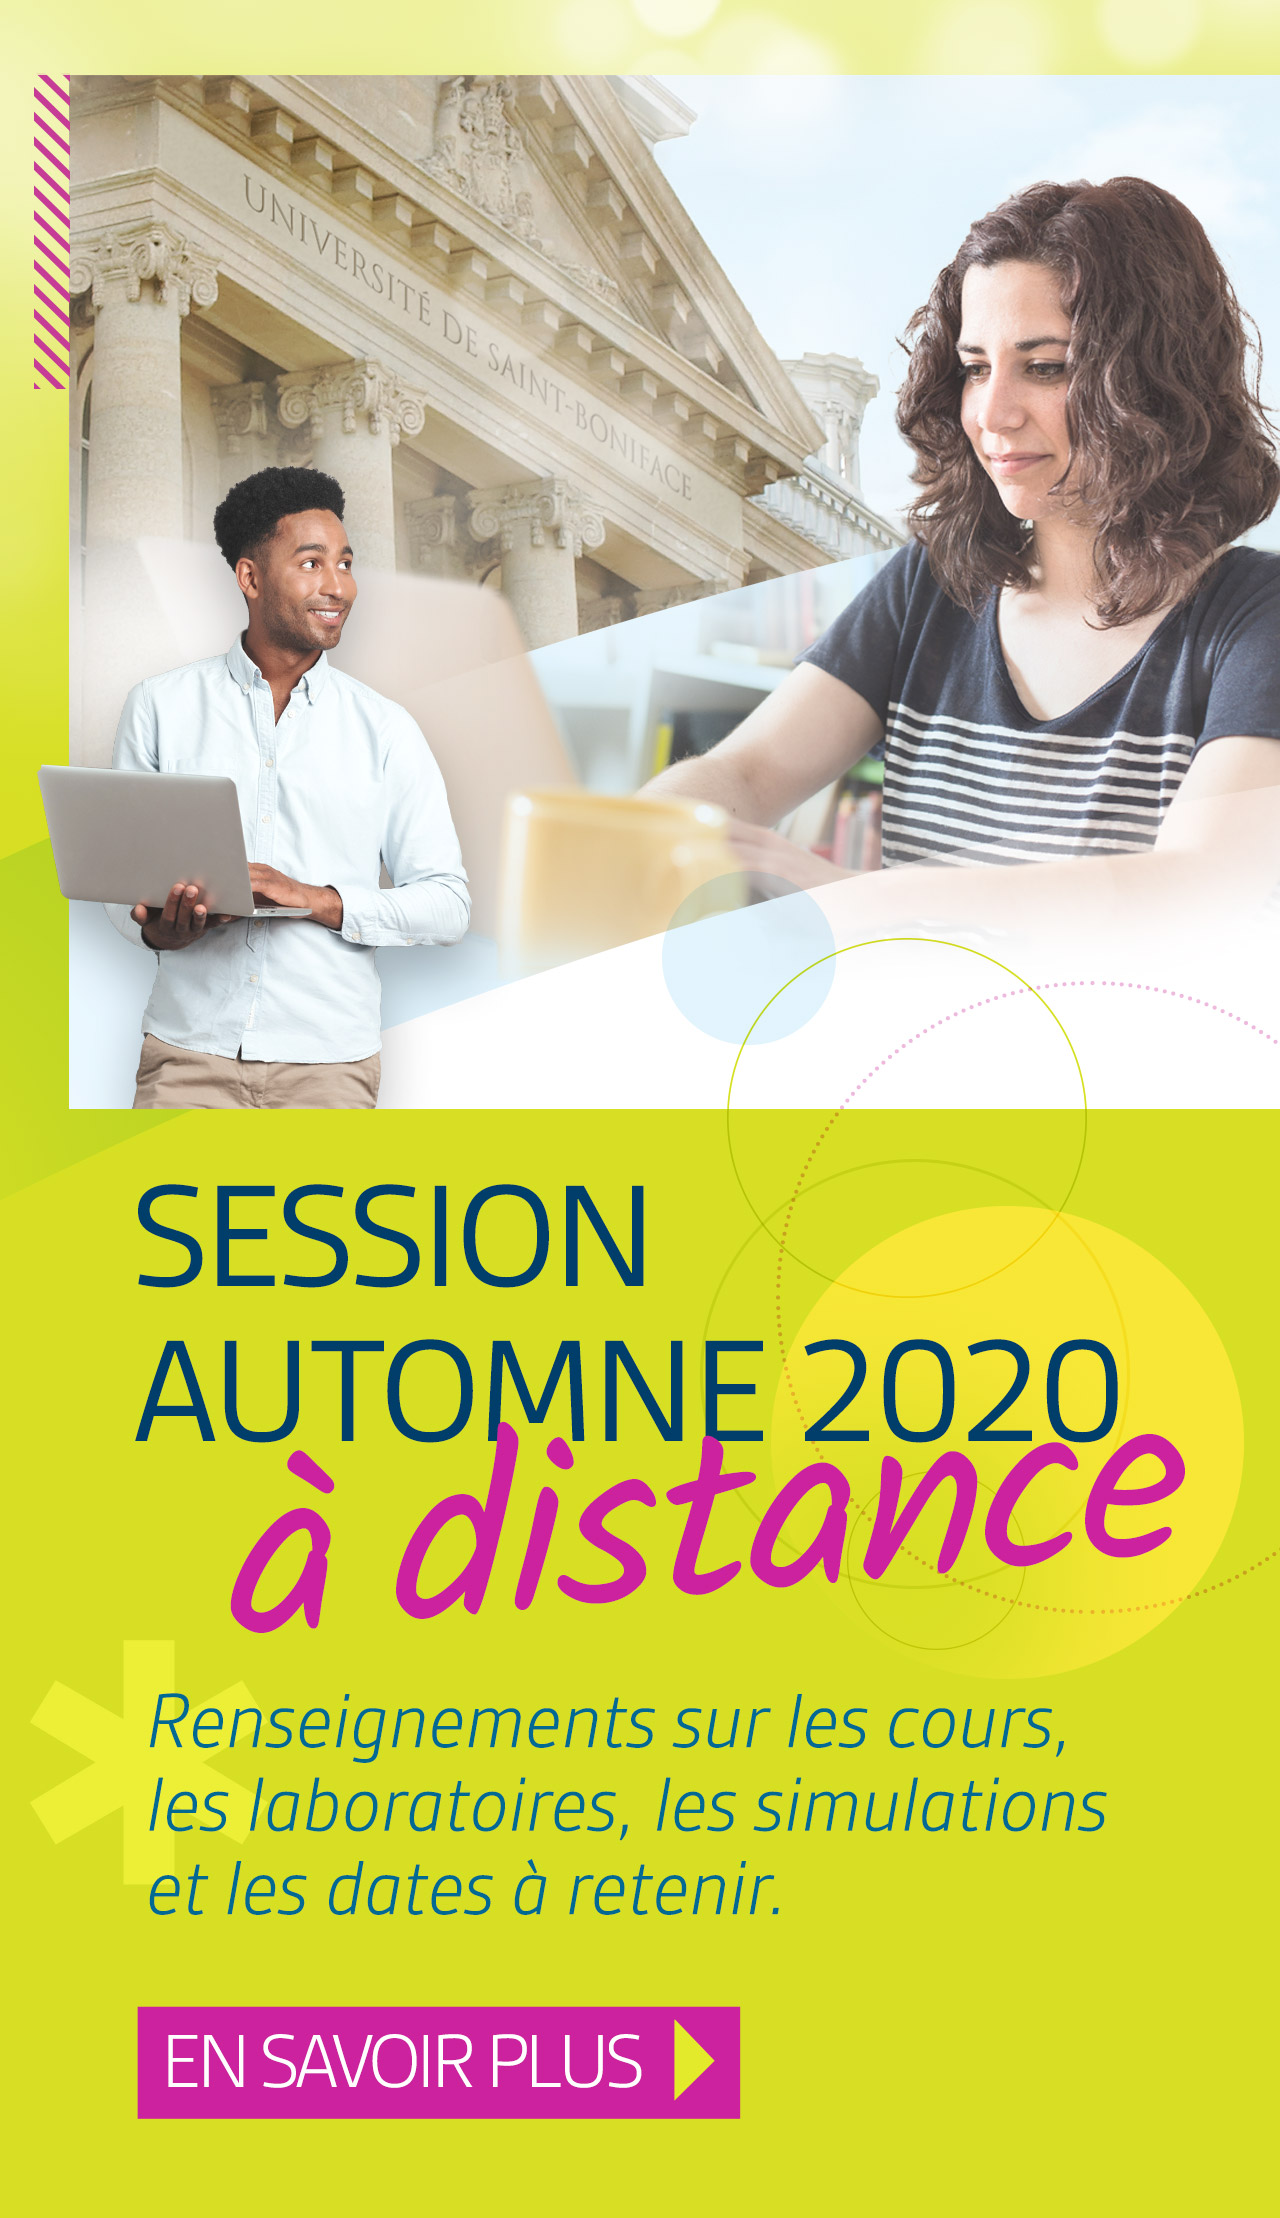 Session automne 2020